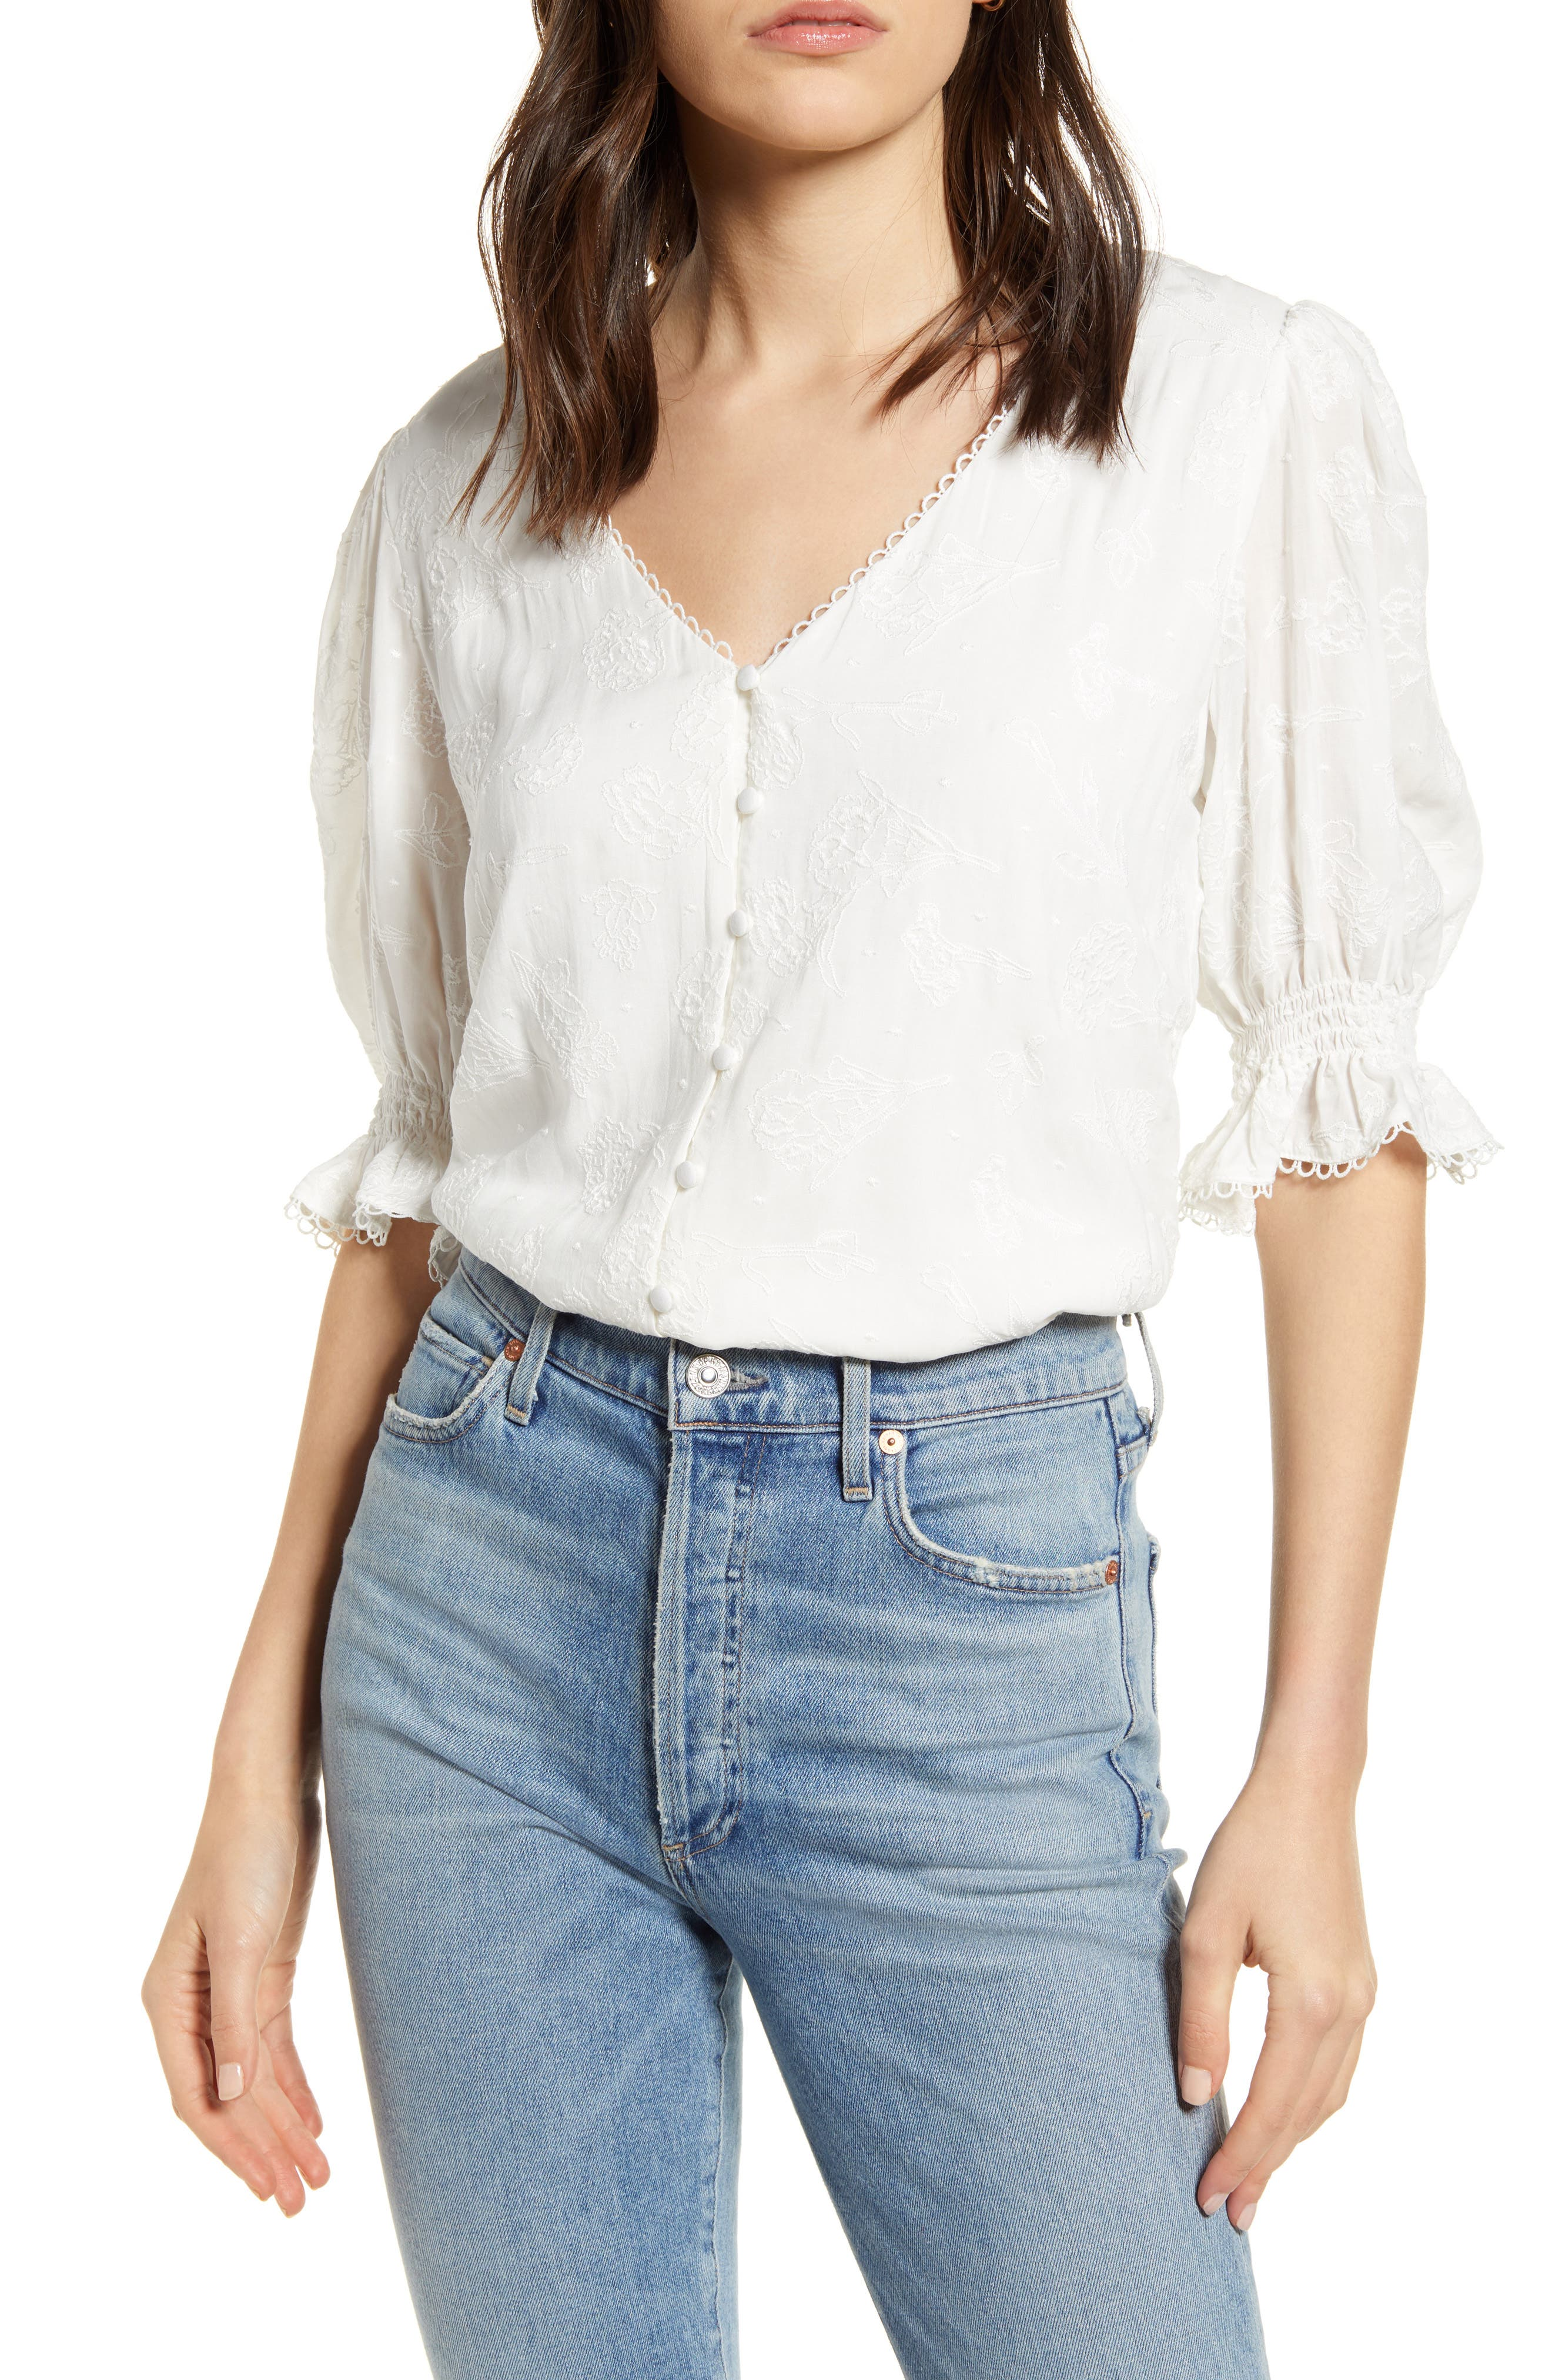 Image of: Cupcakes And Cashmere Floria Puff Sleeve Top Nordstrom